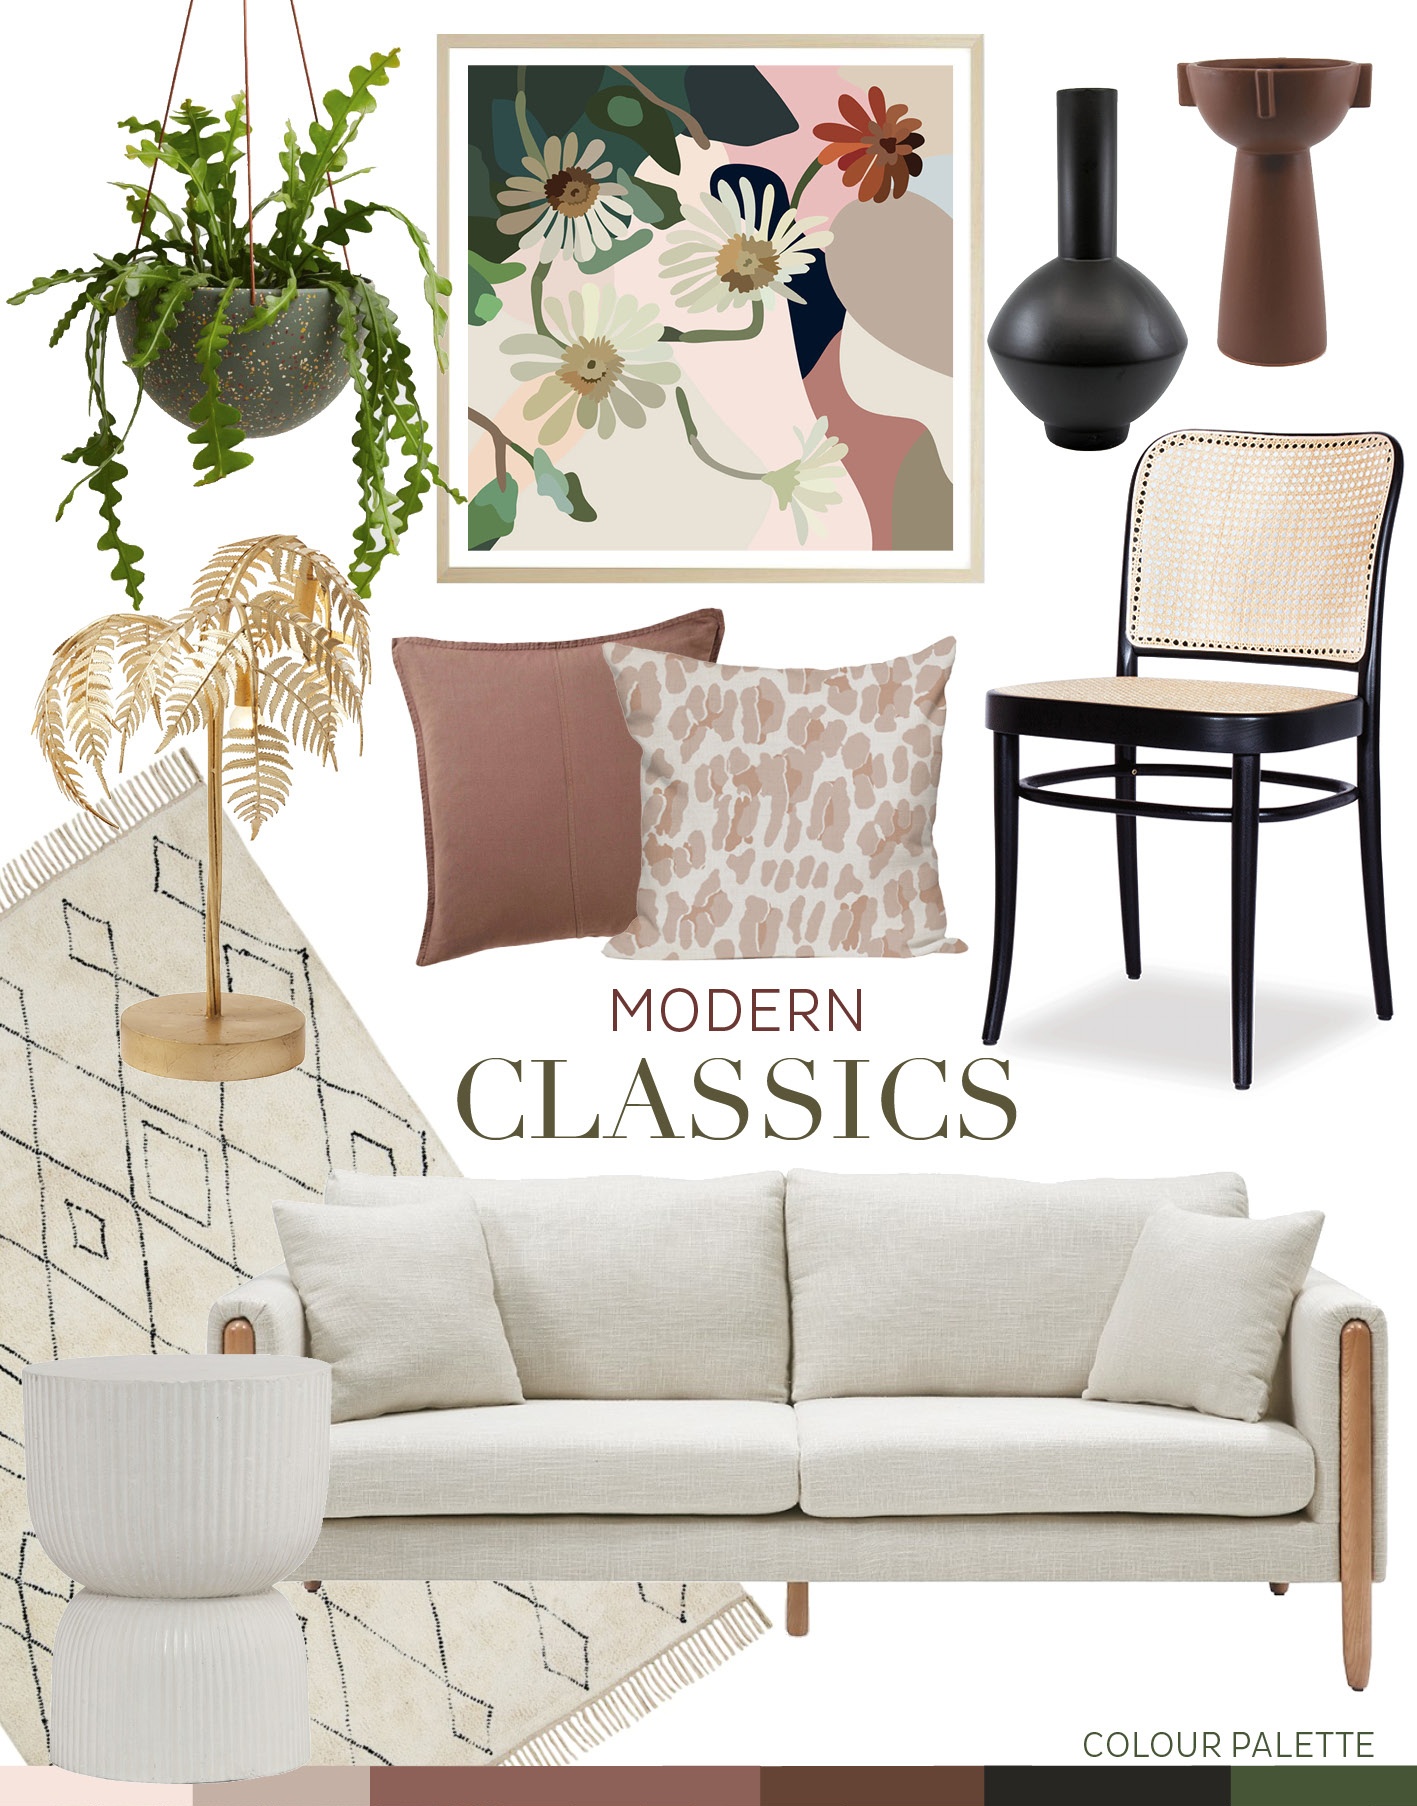 adore_home_magazine_blog_modern_classics copy.jpg